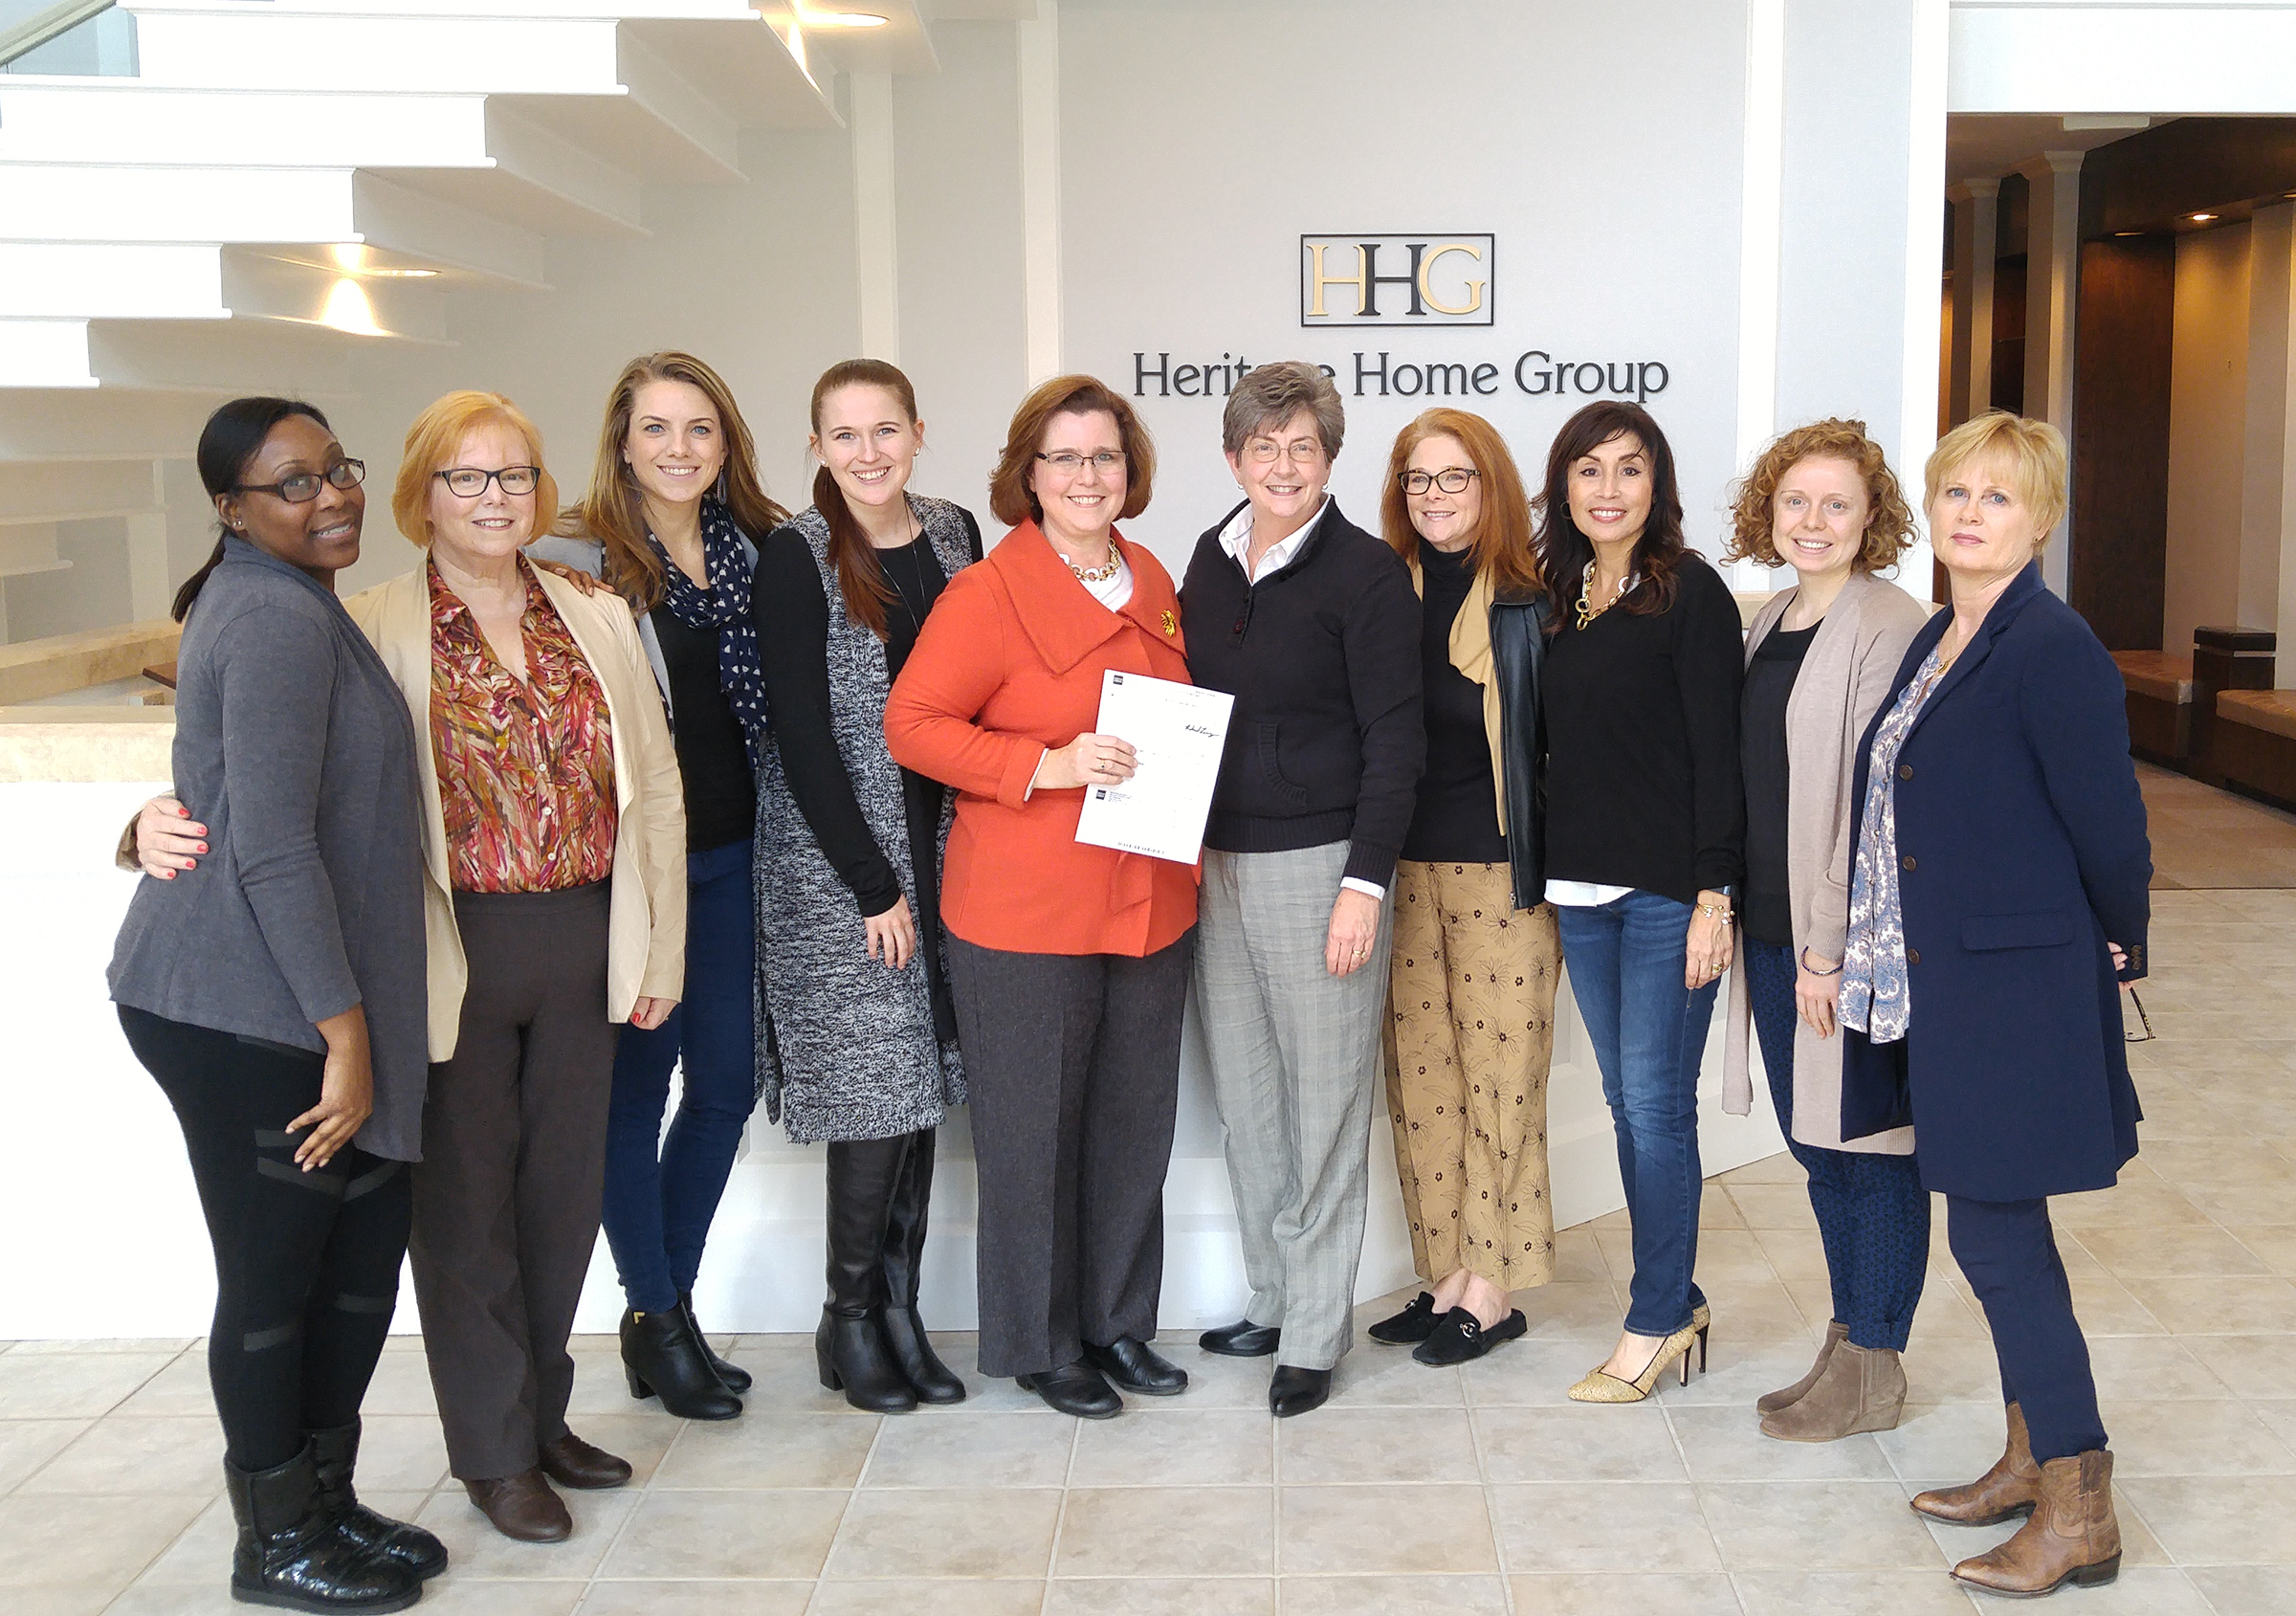 The $30,000 award from Heritage Home Group will be used to fund scholarships.